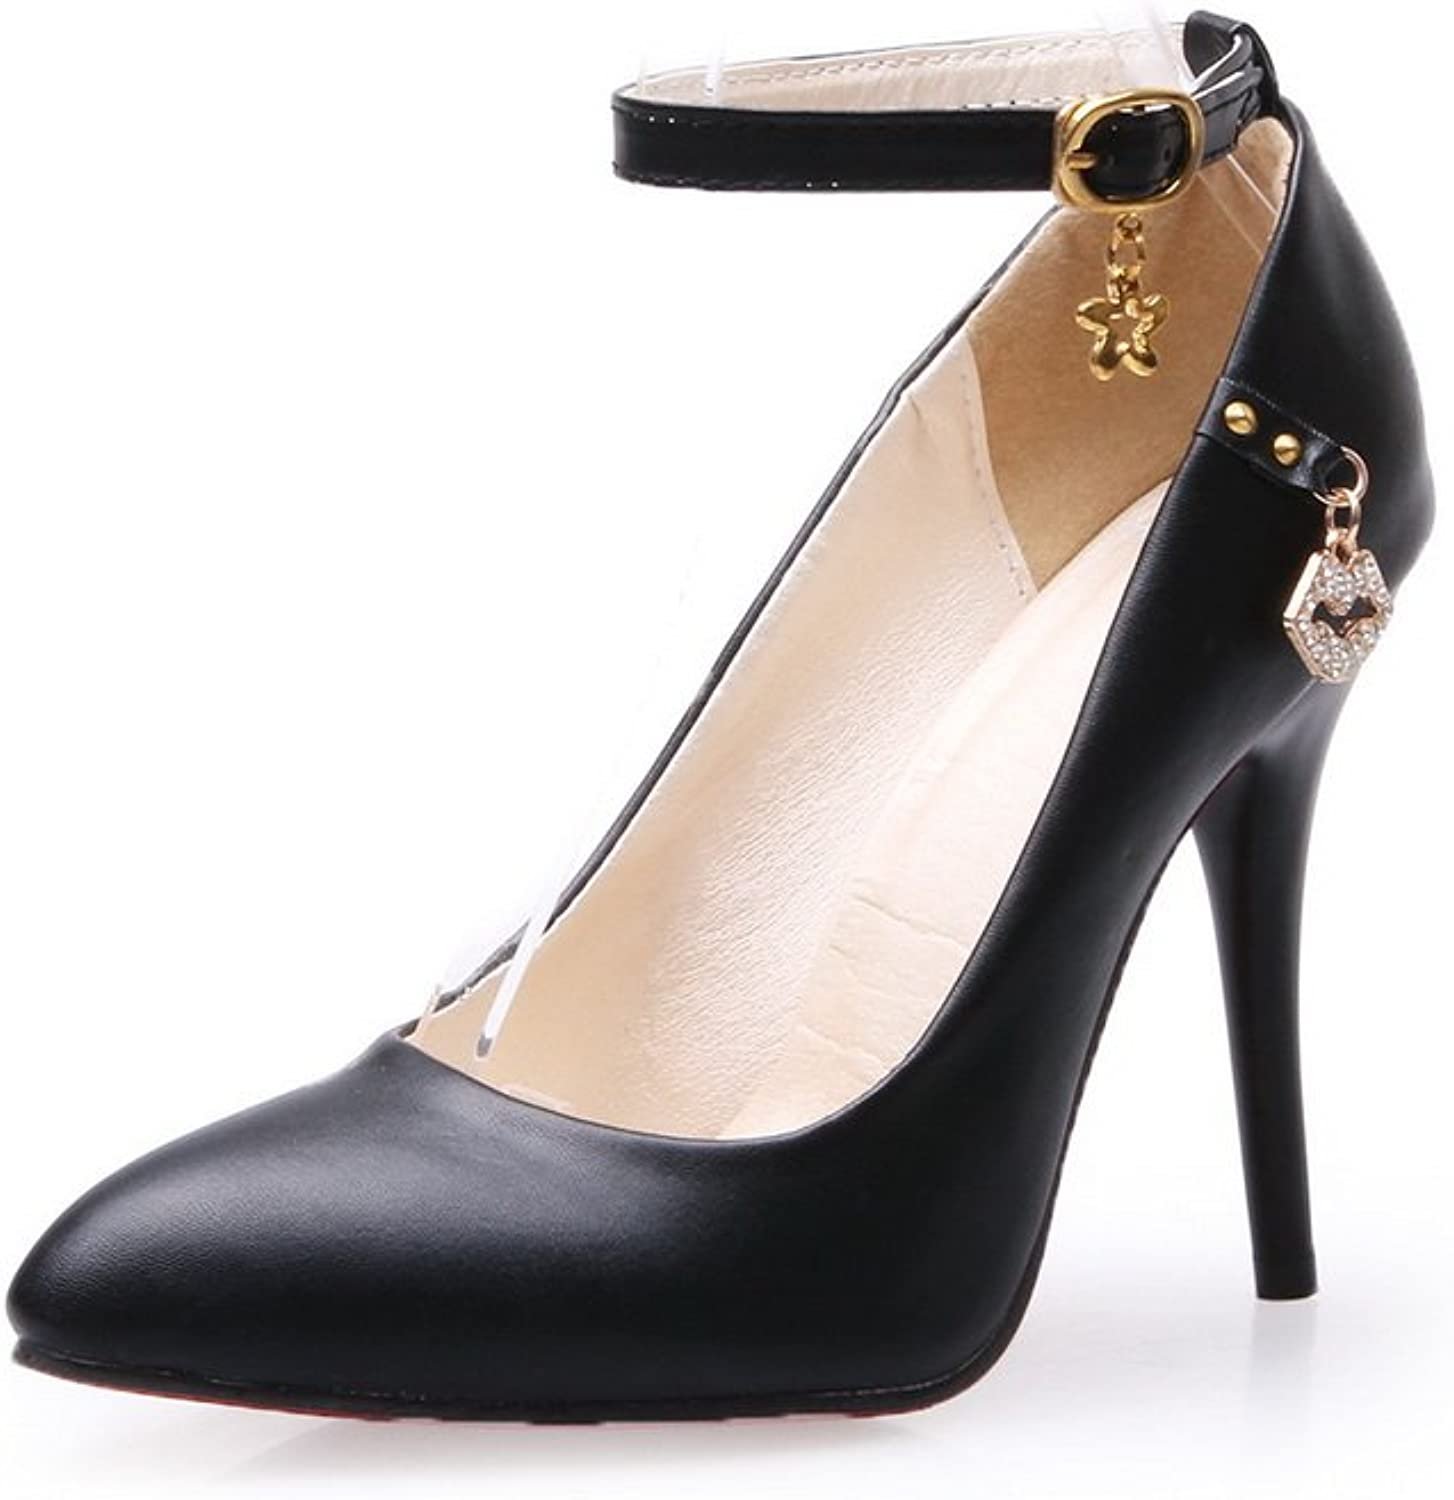 BalaMasa Ladies Buckle Pointed-Toe Charms Urethane Pumps shoes